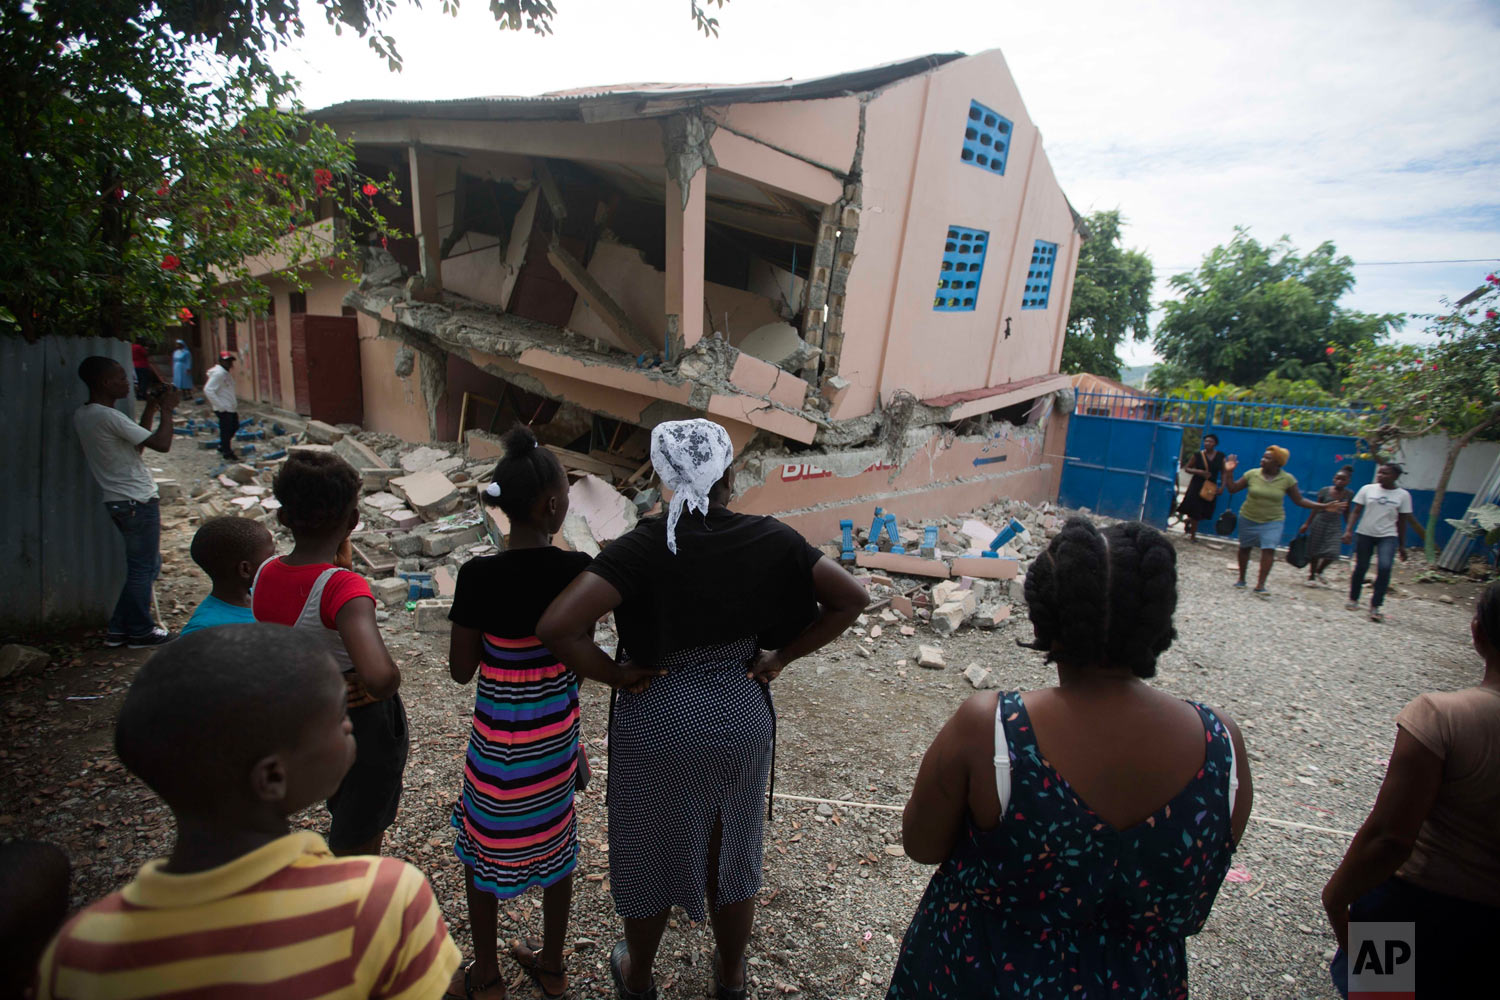 Residents look at a collapsed school after a magnitude 5.9 earthquake hit the night before in Gros Morne, Haiti, Oct. 7, 2018. The quake killed at least 11 people and left dozens injured. (AP Photo/Dieu Nalio Chery)